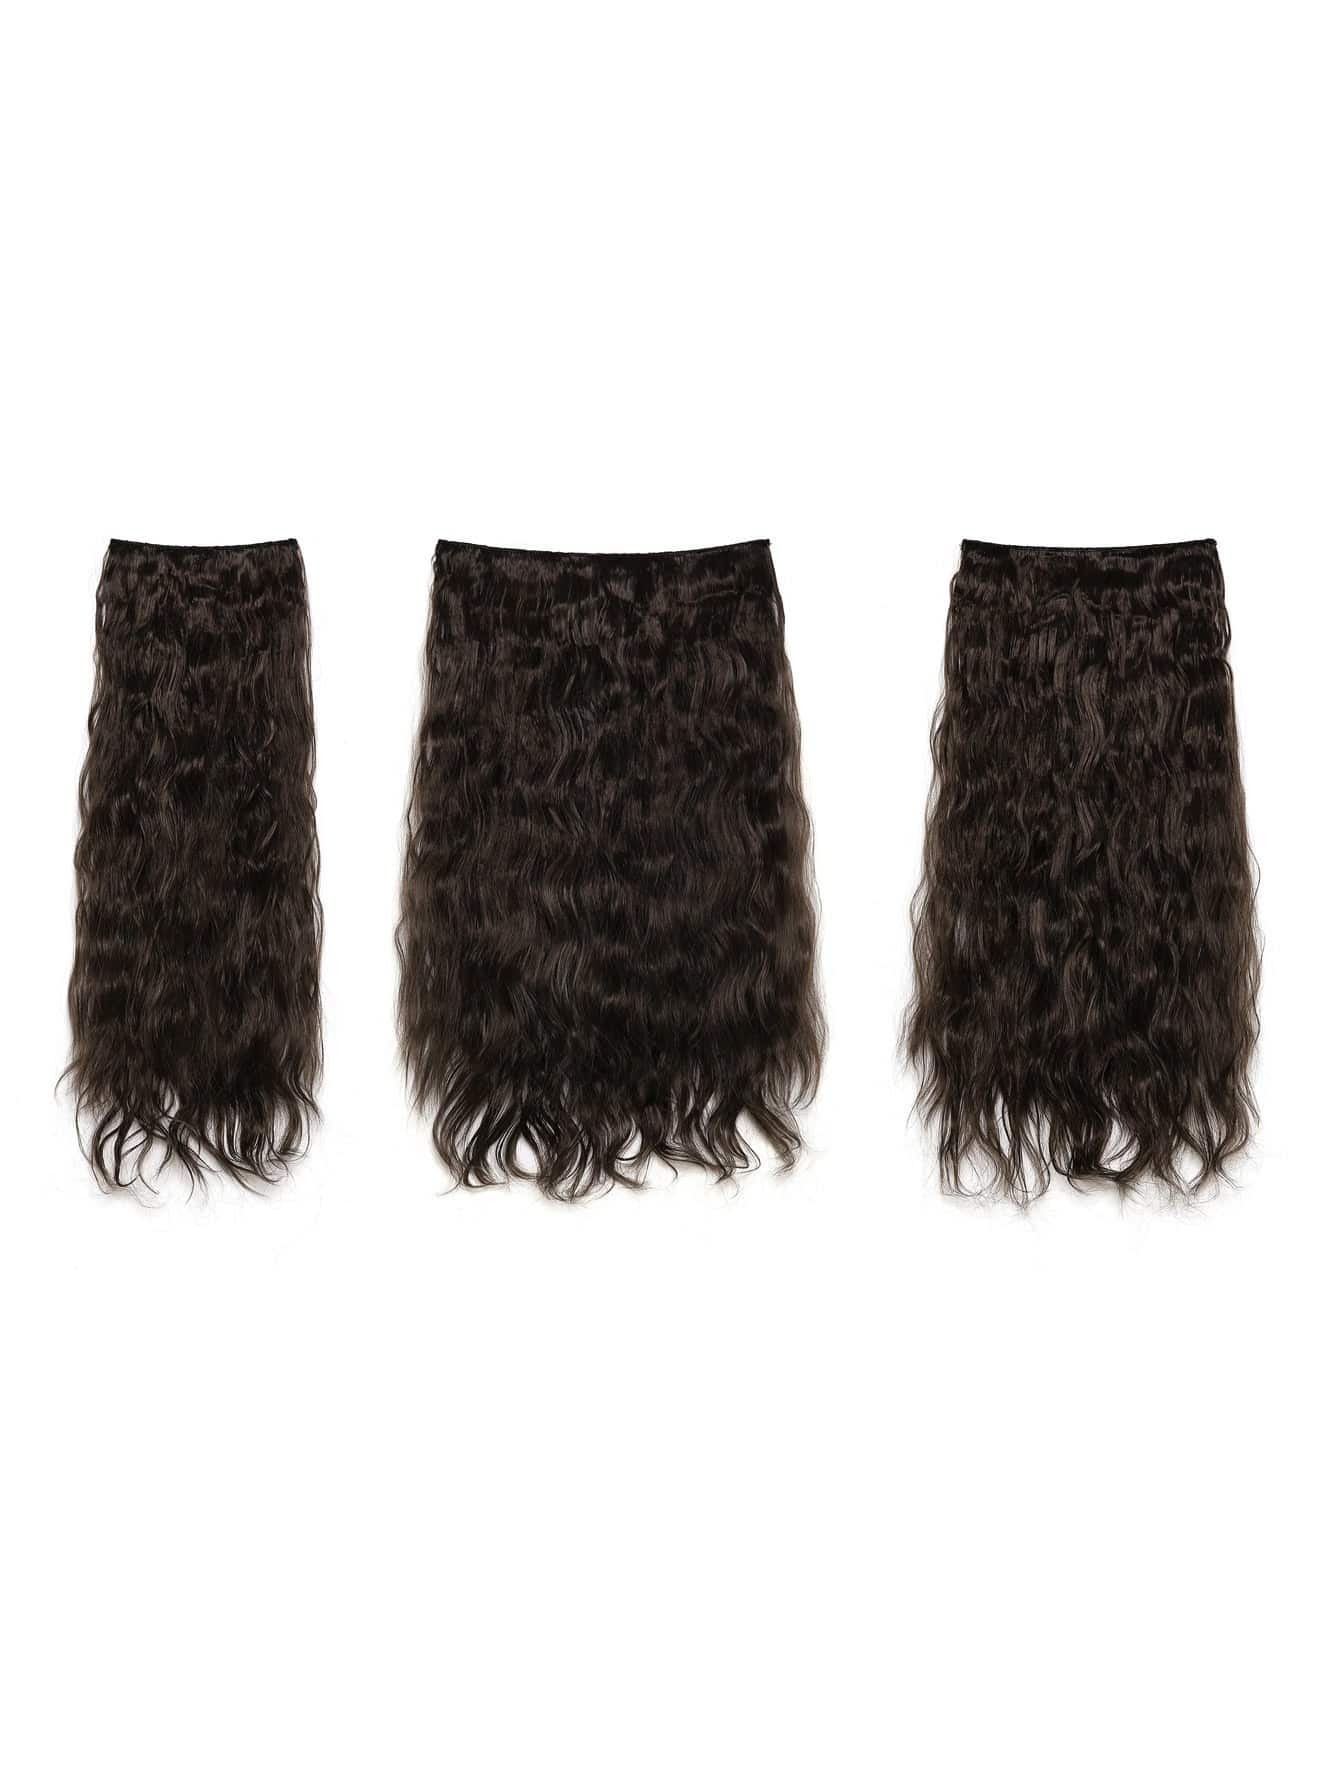 цена на Dark Brown Clip In Curly Hair Extension 3pcs